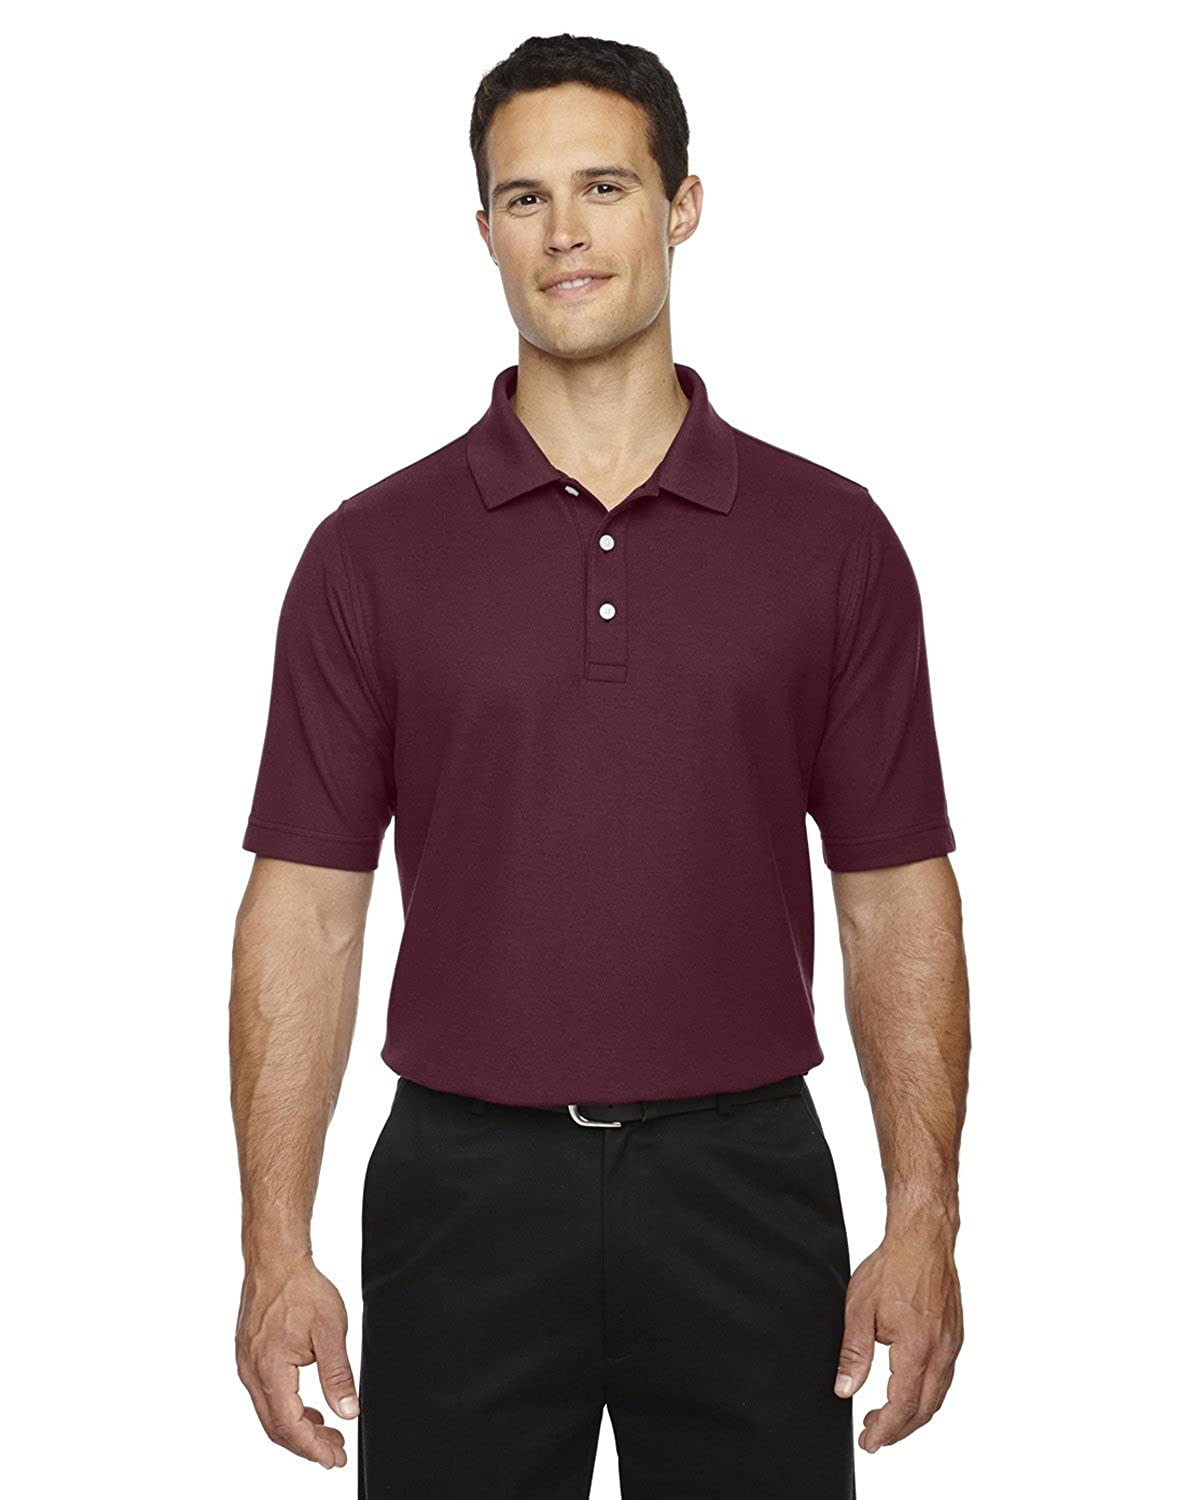 Averills Sharper Uniforms Mens Moisture Wicking Cotton Waitstaff Polo Shirt